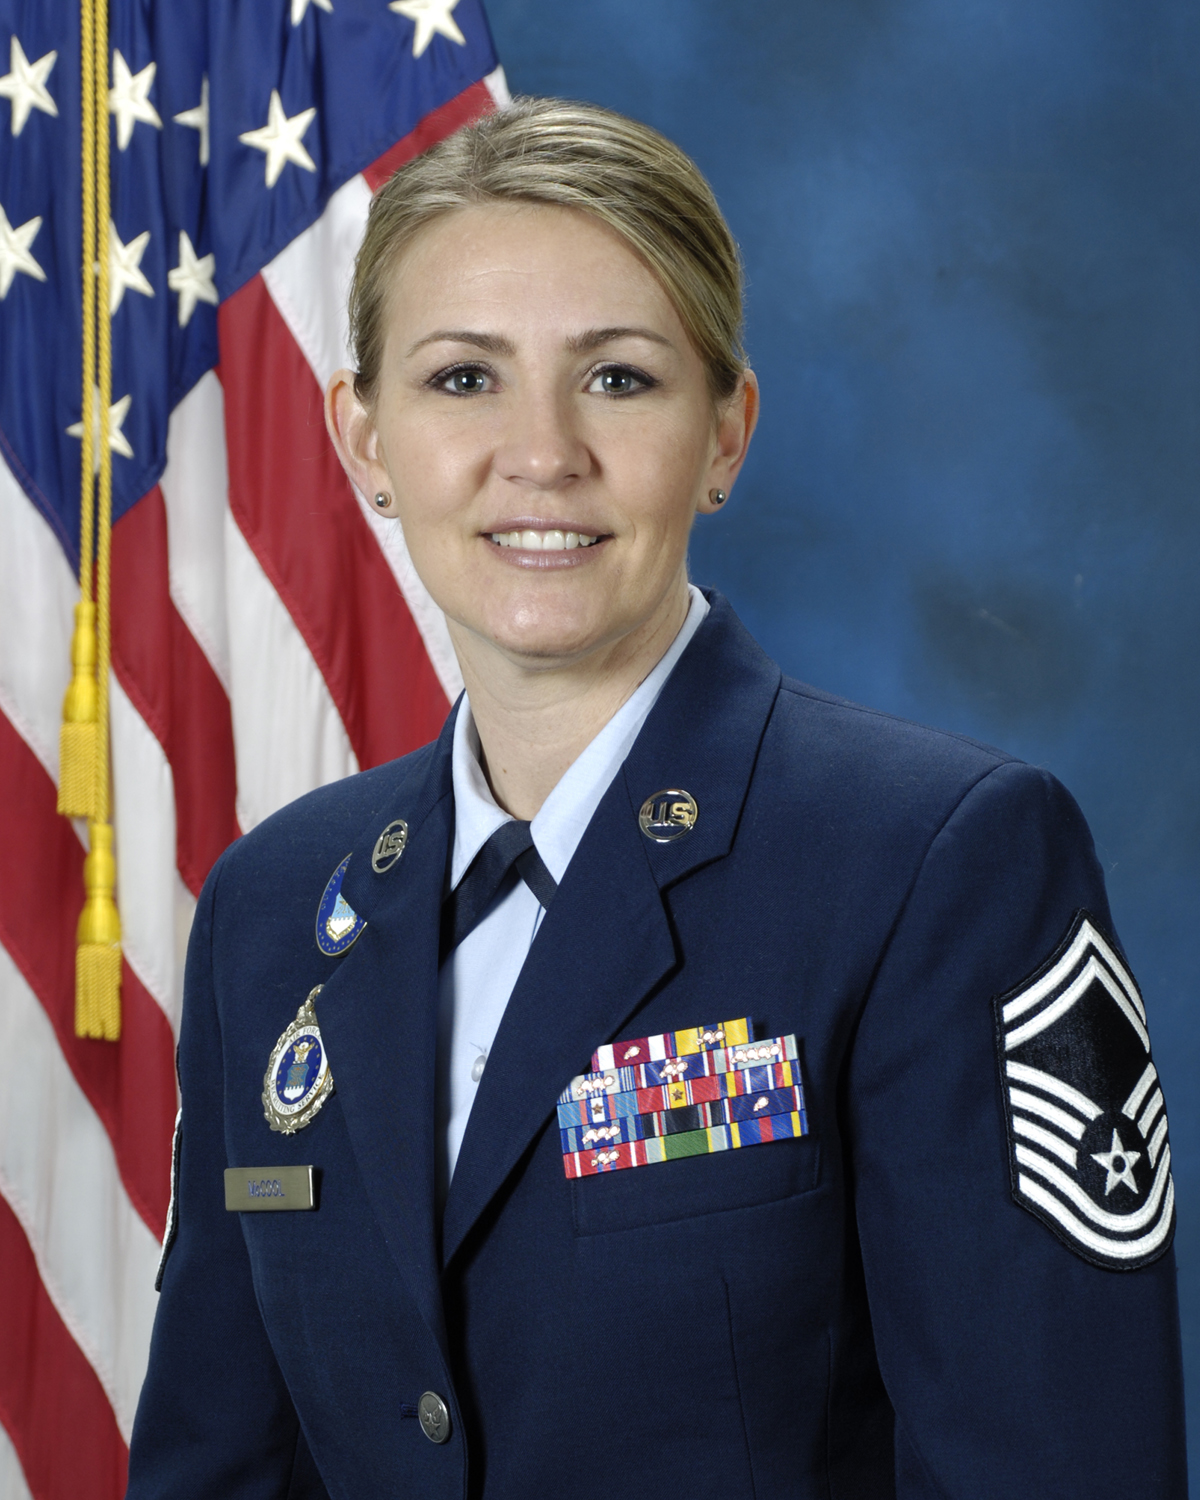 single women in hanscom afb Woman's best friend: hanscom welcomes first female k-9 handler in two decades  by 1st lt martha petersante-gioia, 66th air base wing public affairs  for one  hanscom staff sergeant this reality has come true as she.